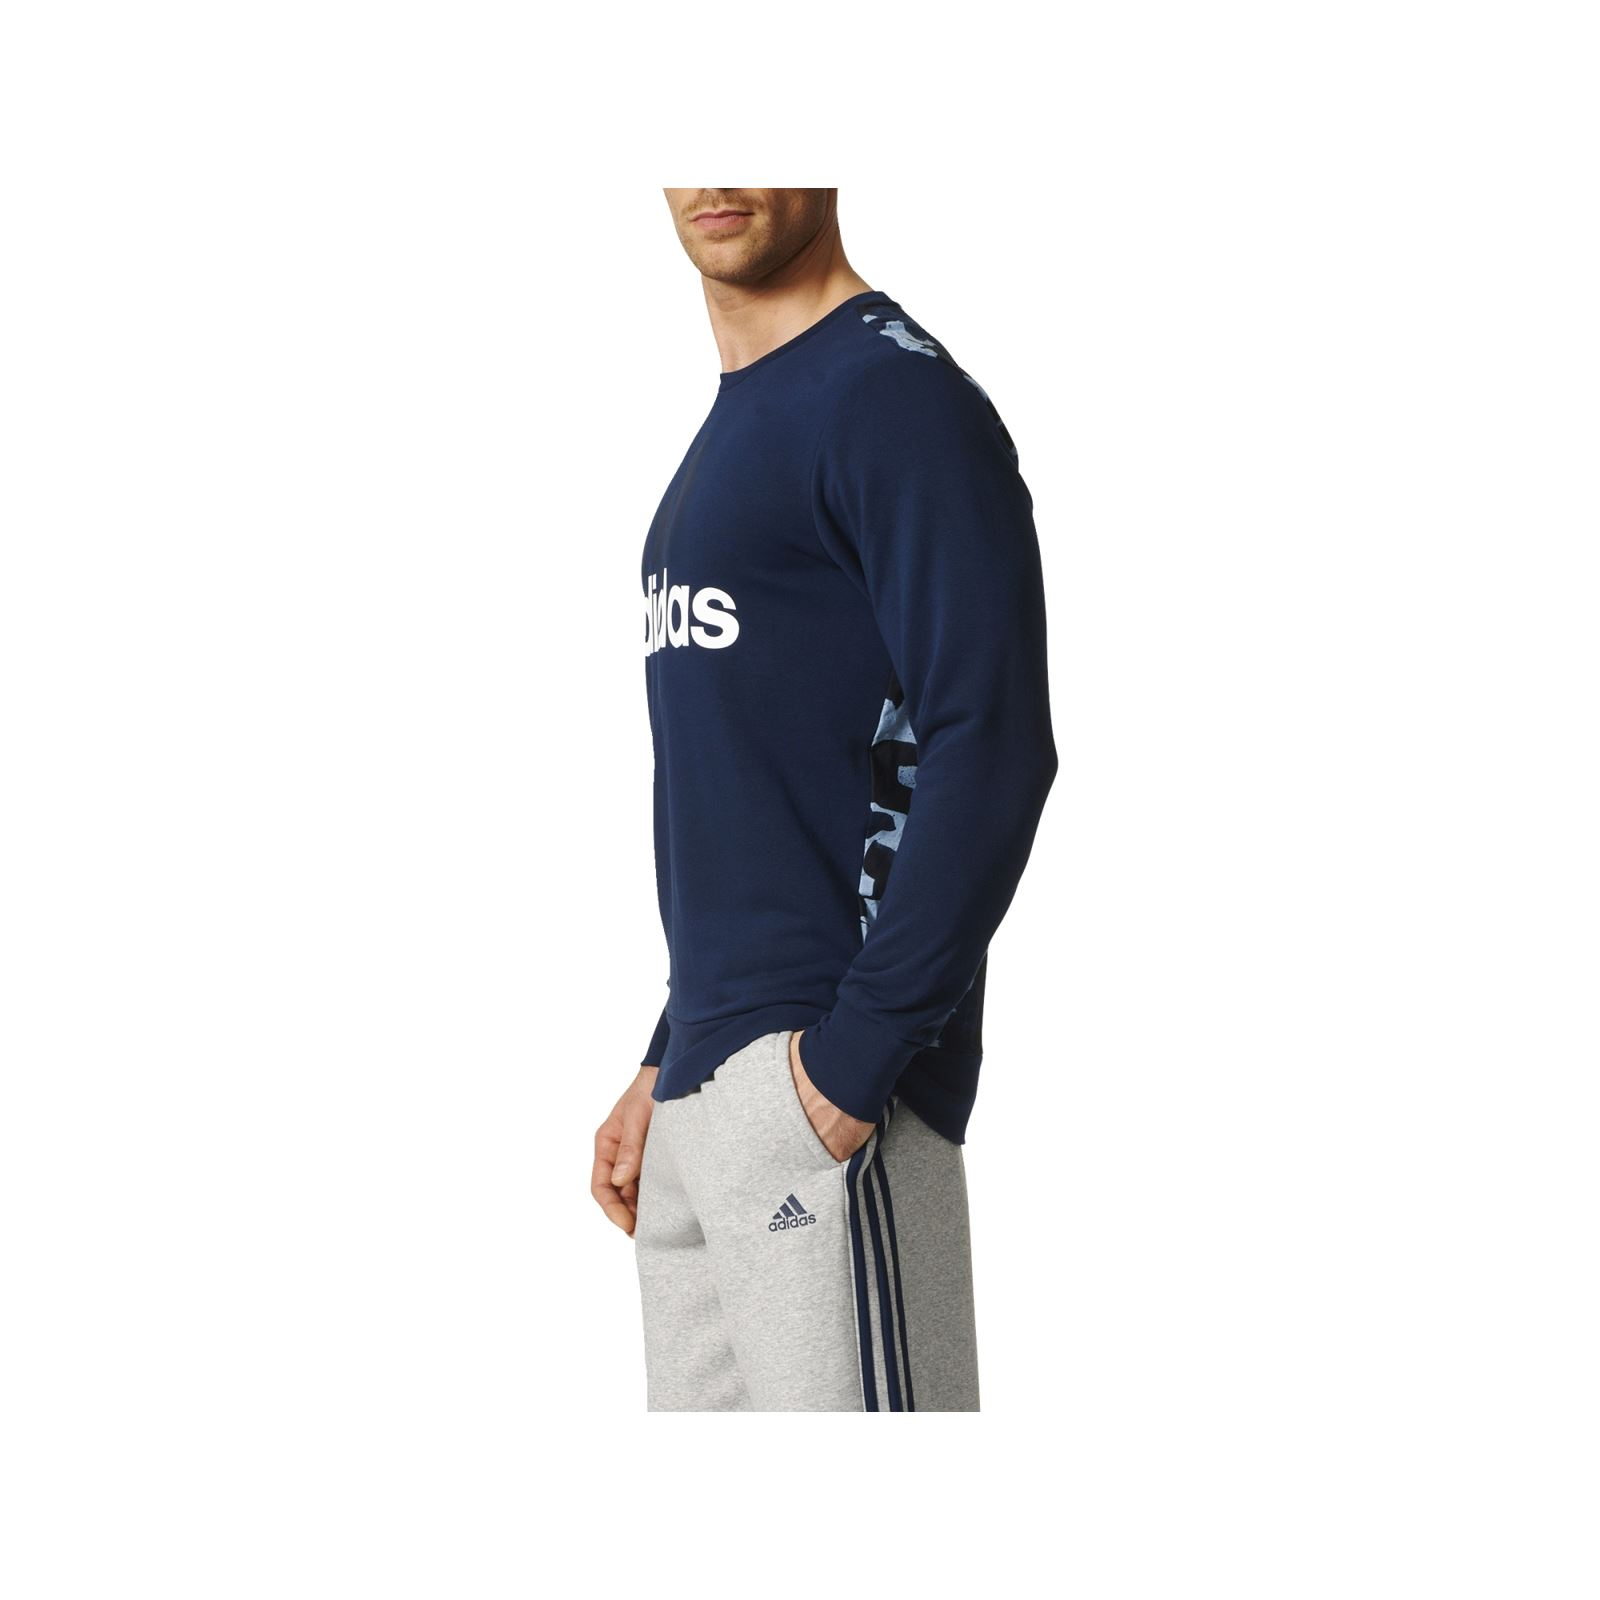 adidas performance sweat shirt bleu marine brandalley. Black Bedroom Furniture Sets. Home Design Ideas